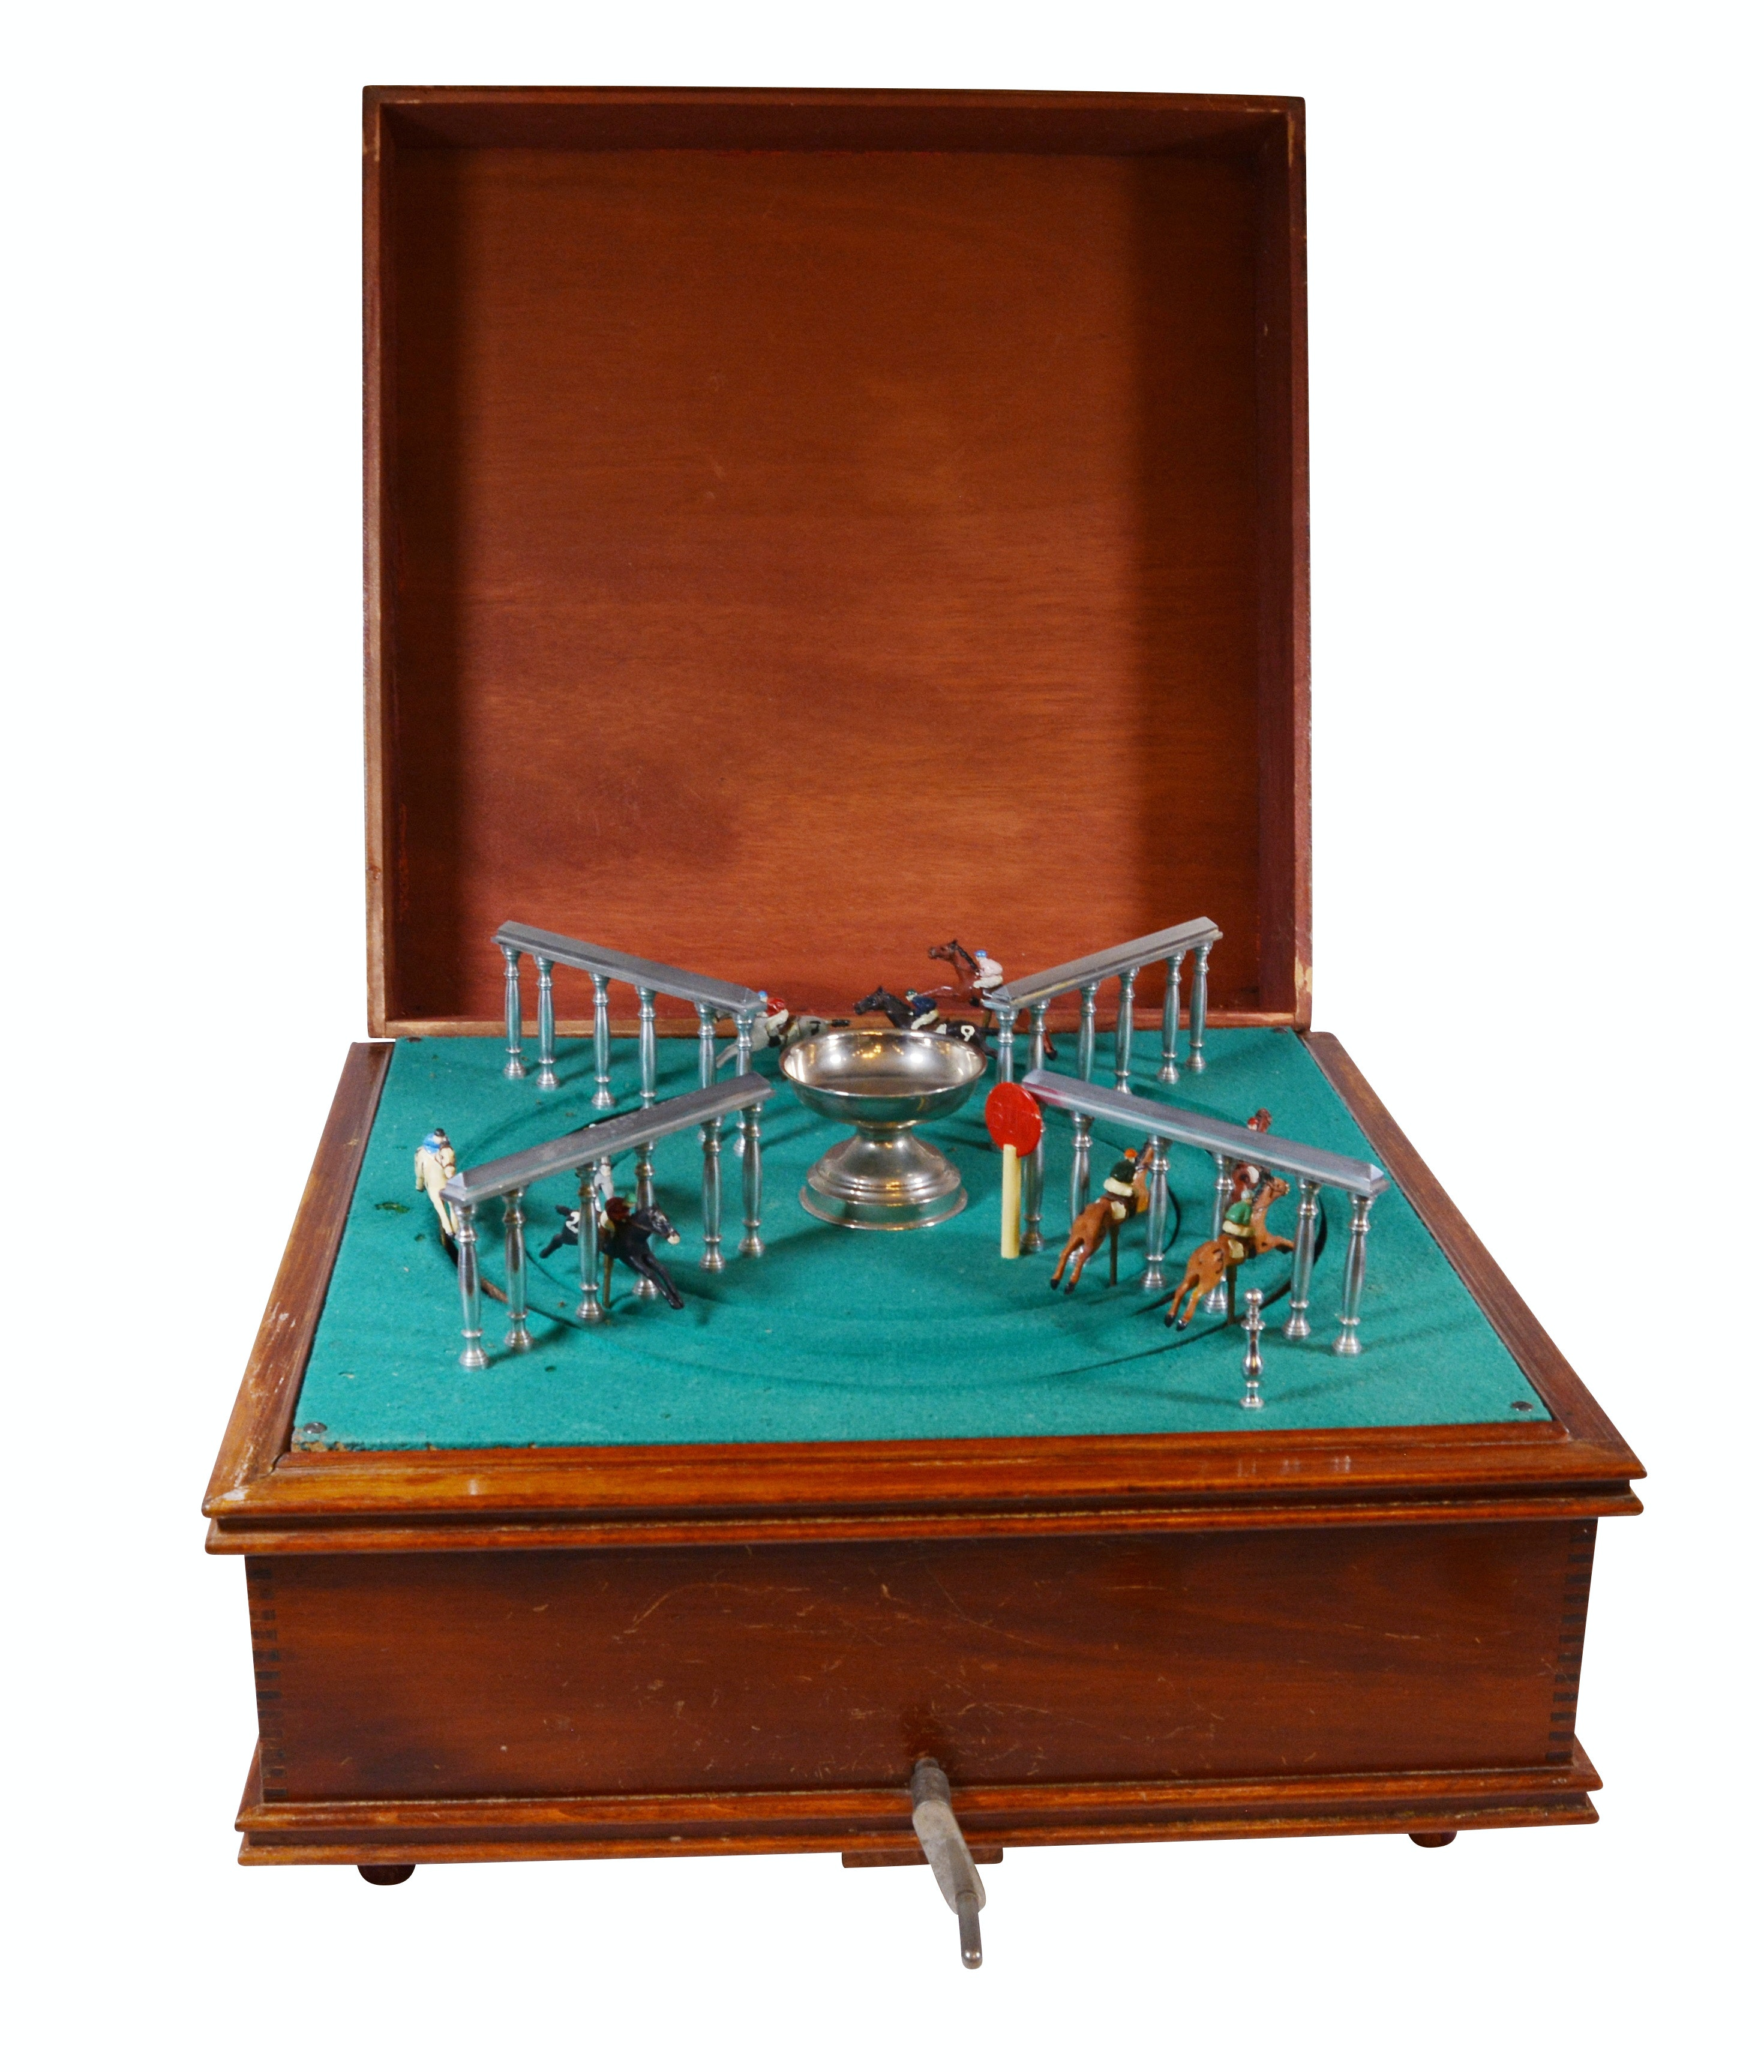 Mechanical Horse Racing Game, Early 20th Century